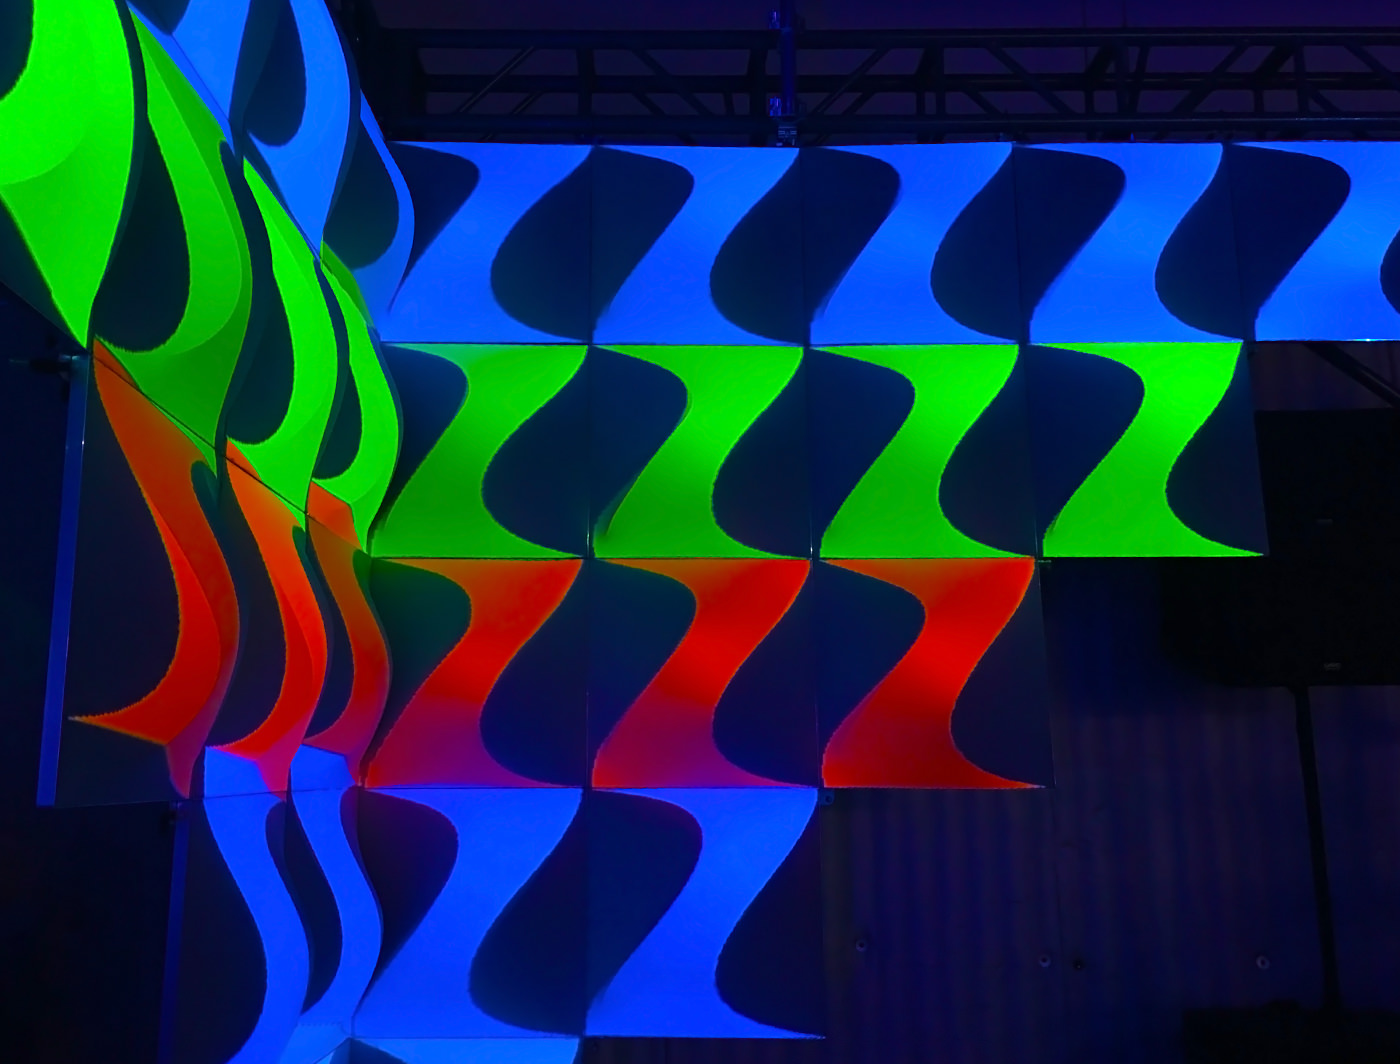 FABlok Wave with Projection Mapping, Designed by Matthew Gavin Enterprises and Projection Mapping by Searchlight Visuals